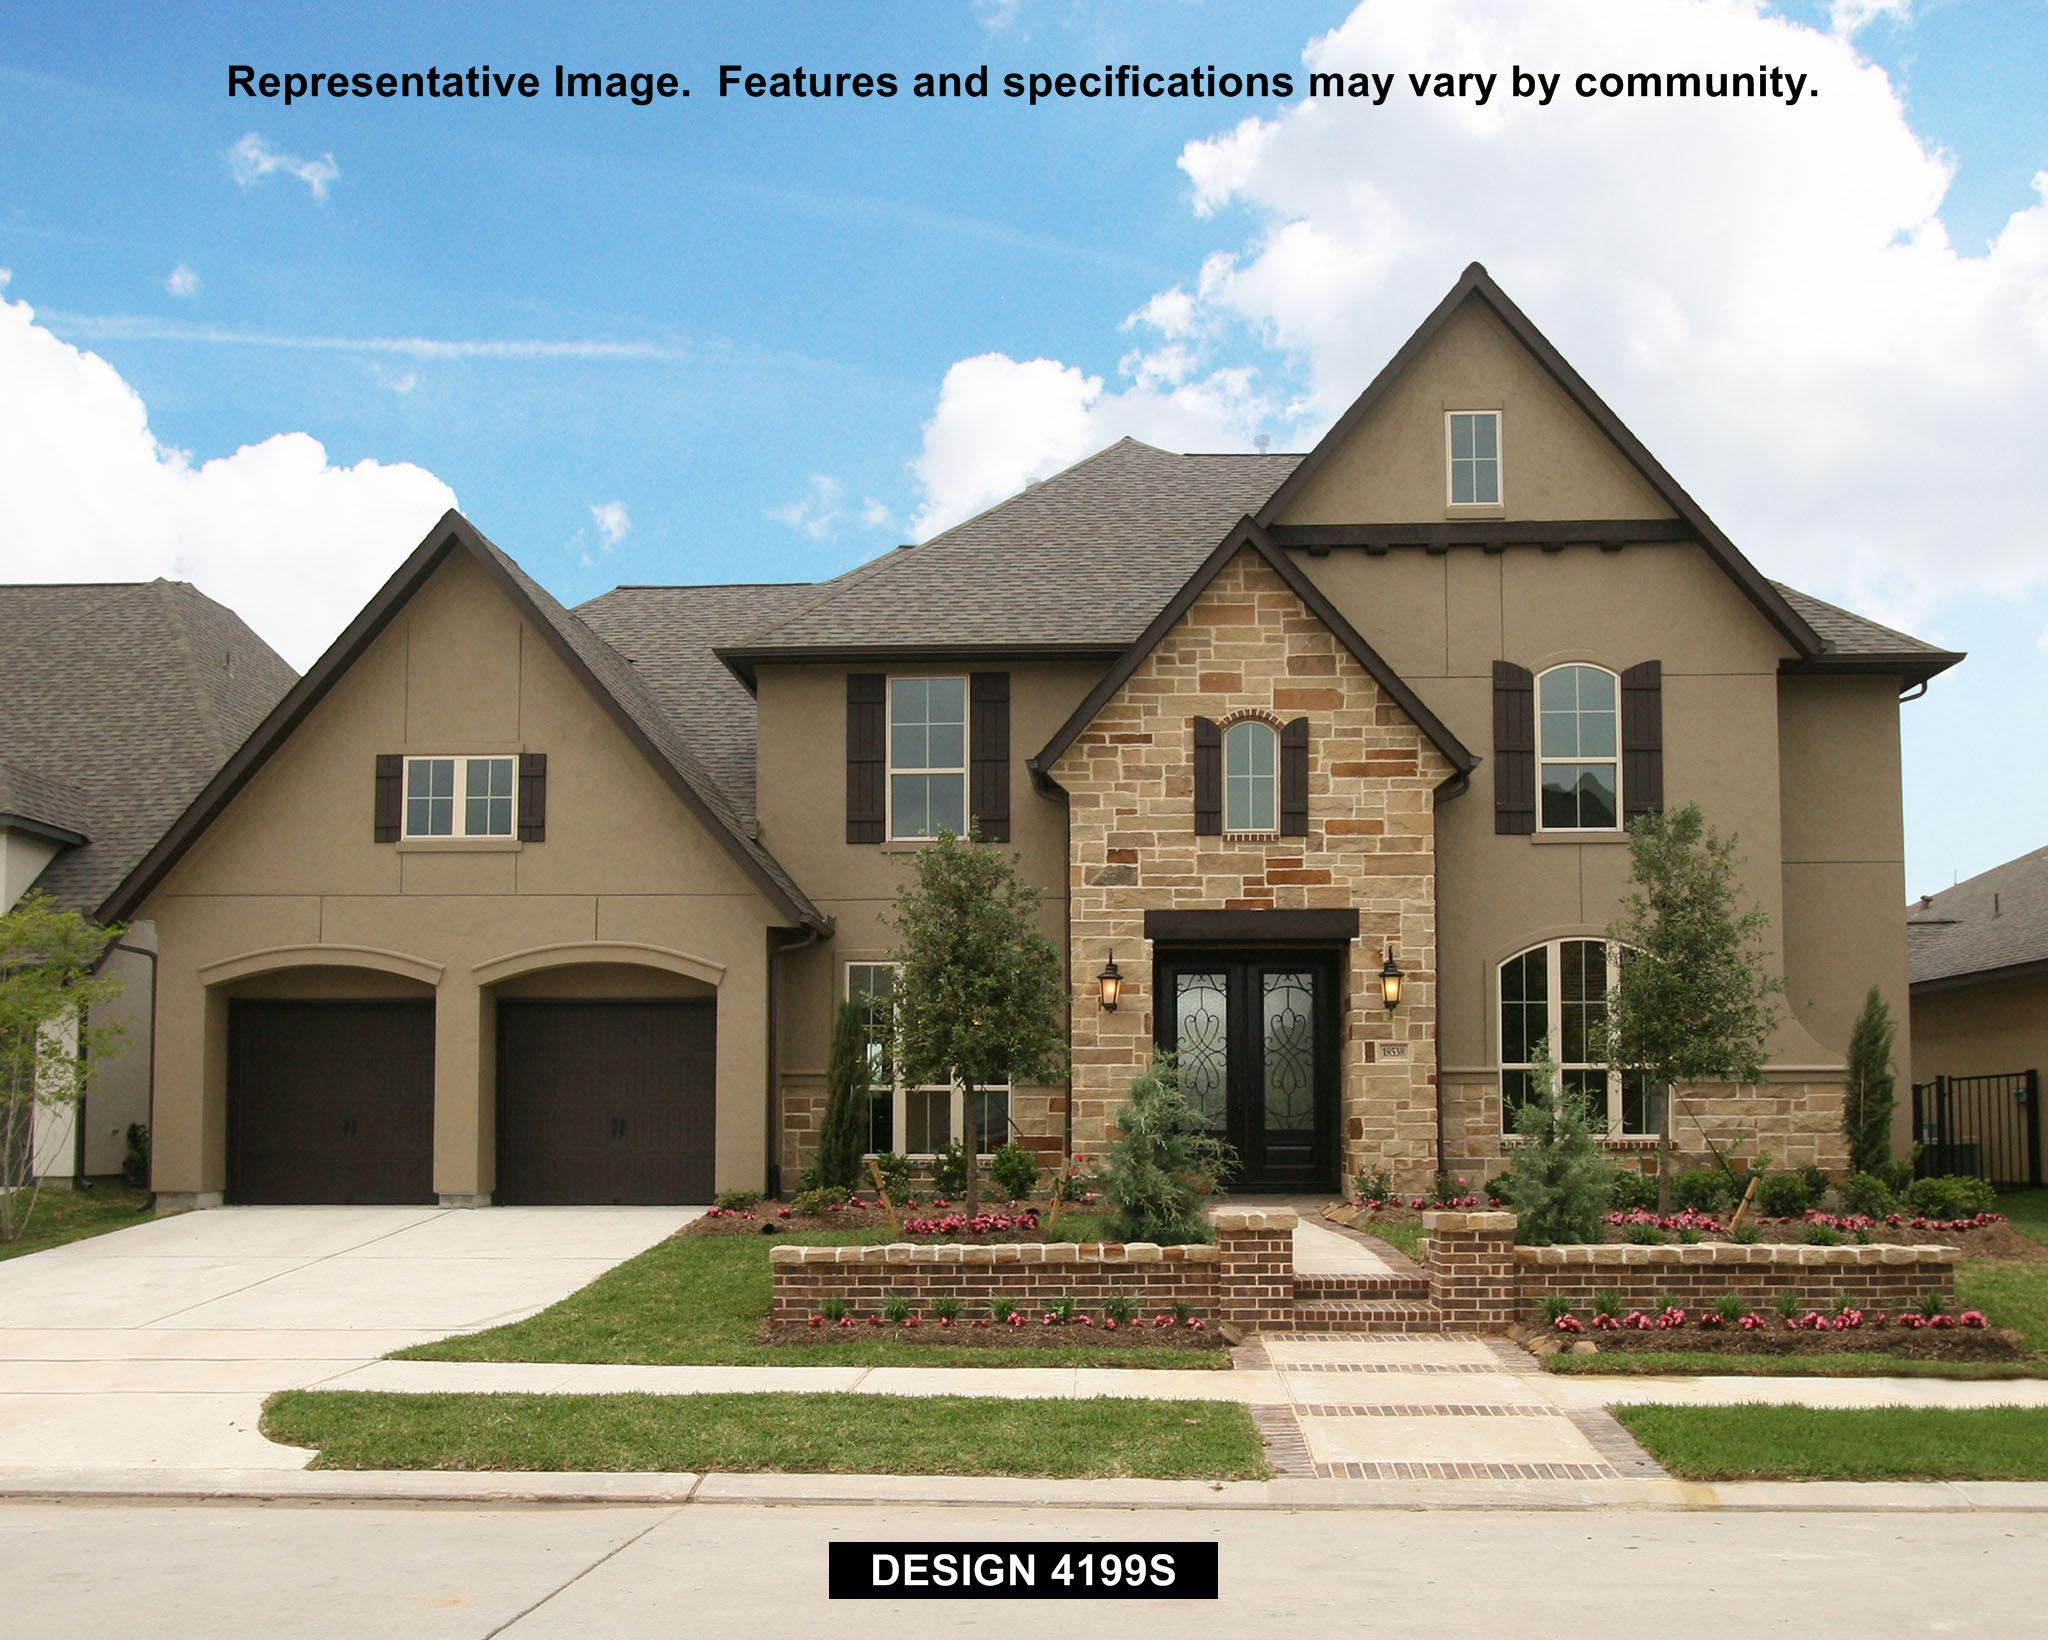 Single Family for Sale at River Valley 70' - 4199s 7986 Cibolo View Fair Oaks Ranch, Texas 78015 United States